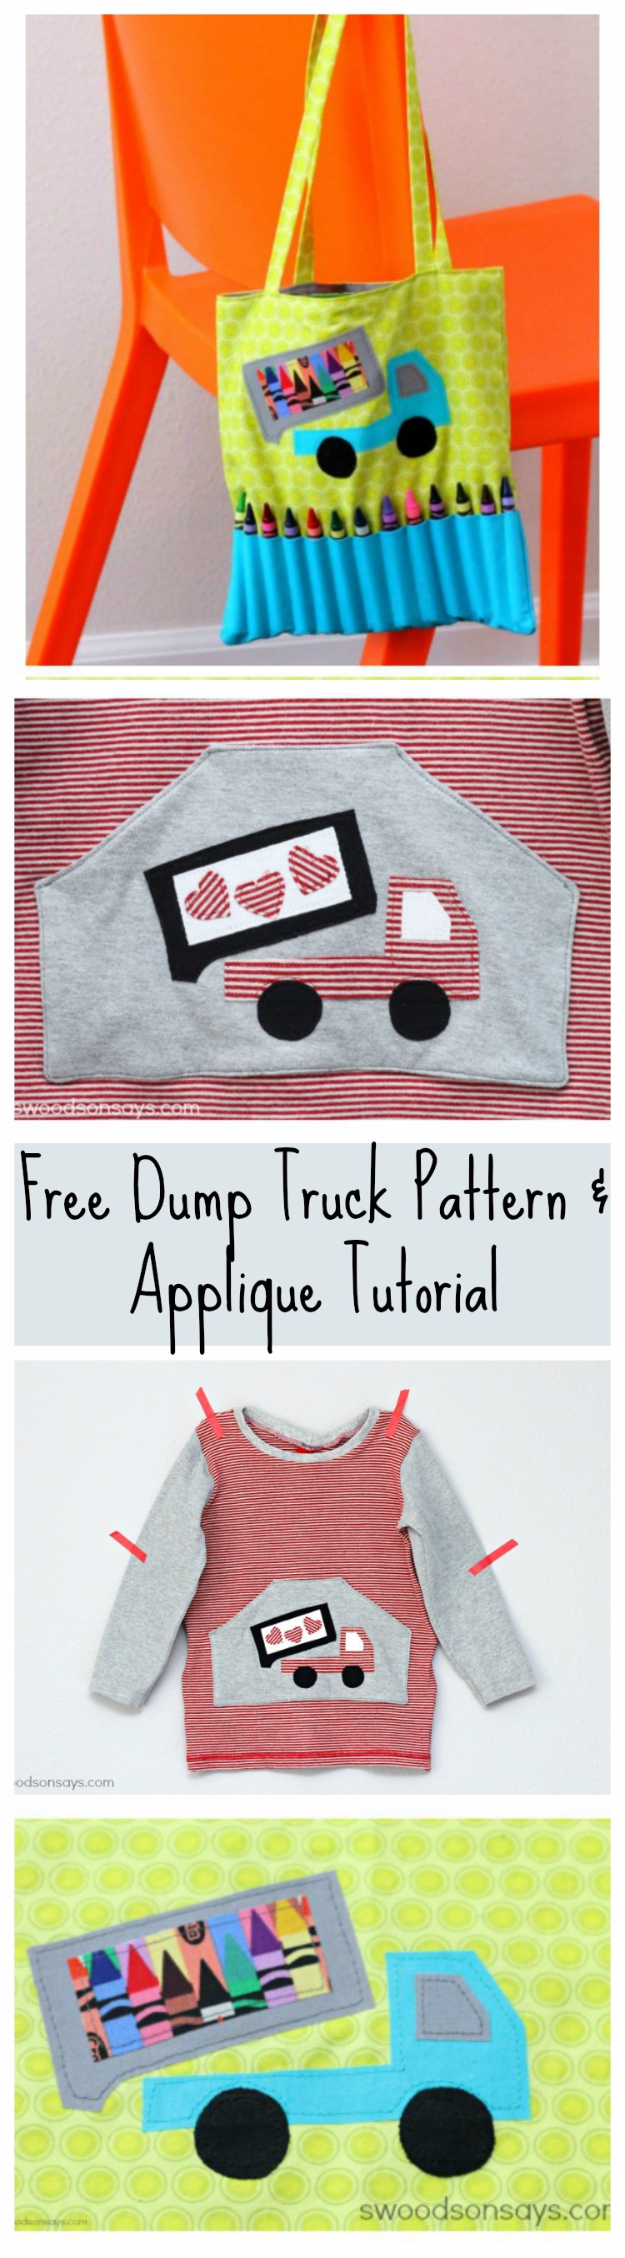 Best Sewing Projects to Make For Boys - Dump Truck Applique - Creative Sewing Tutorials for Baby Kids and Teens - Free Patterns and Step by Step Tutorials for Jackets, Jeans, Shirts, Pants, Hats, Backpacks and Bags - Easy DIY Projects and Quick Crafts Ideas #sewing #kids #boys #sewingprojects